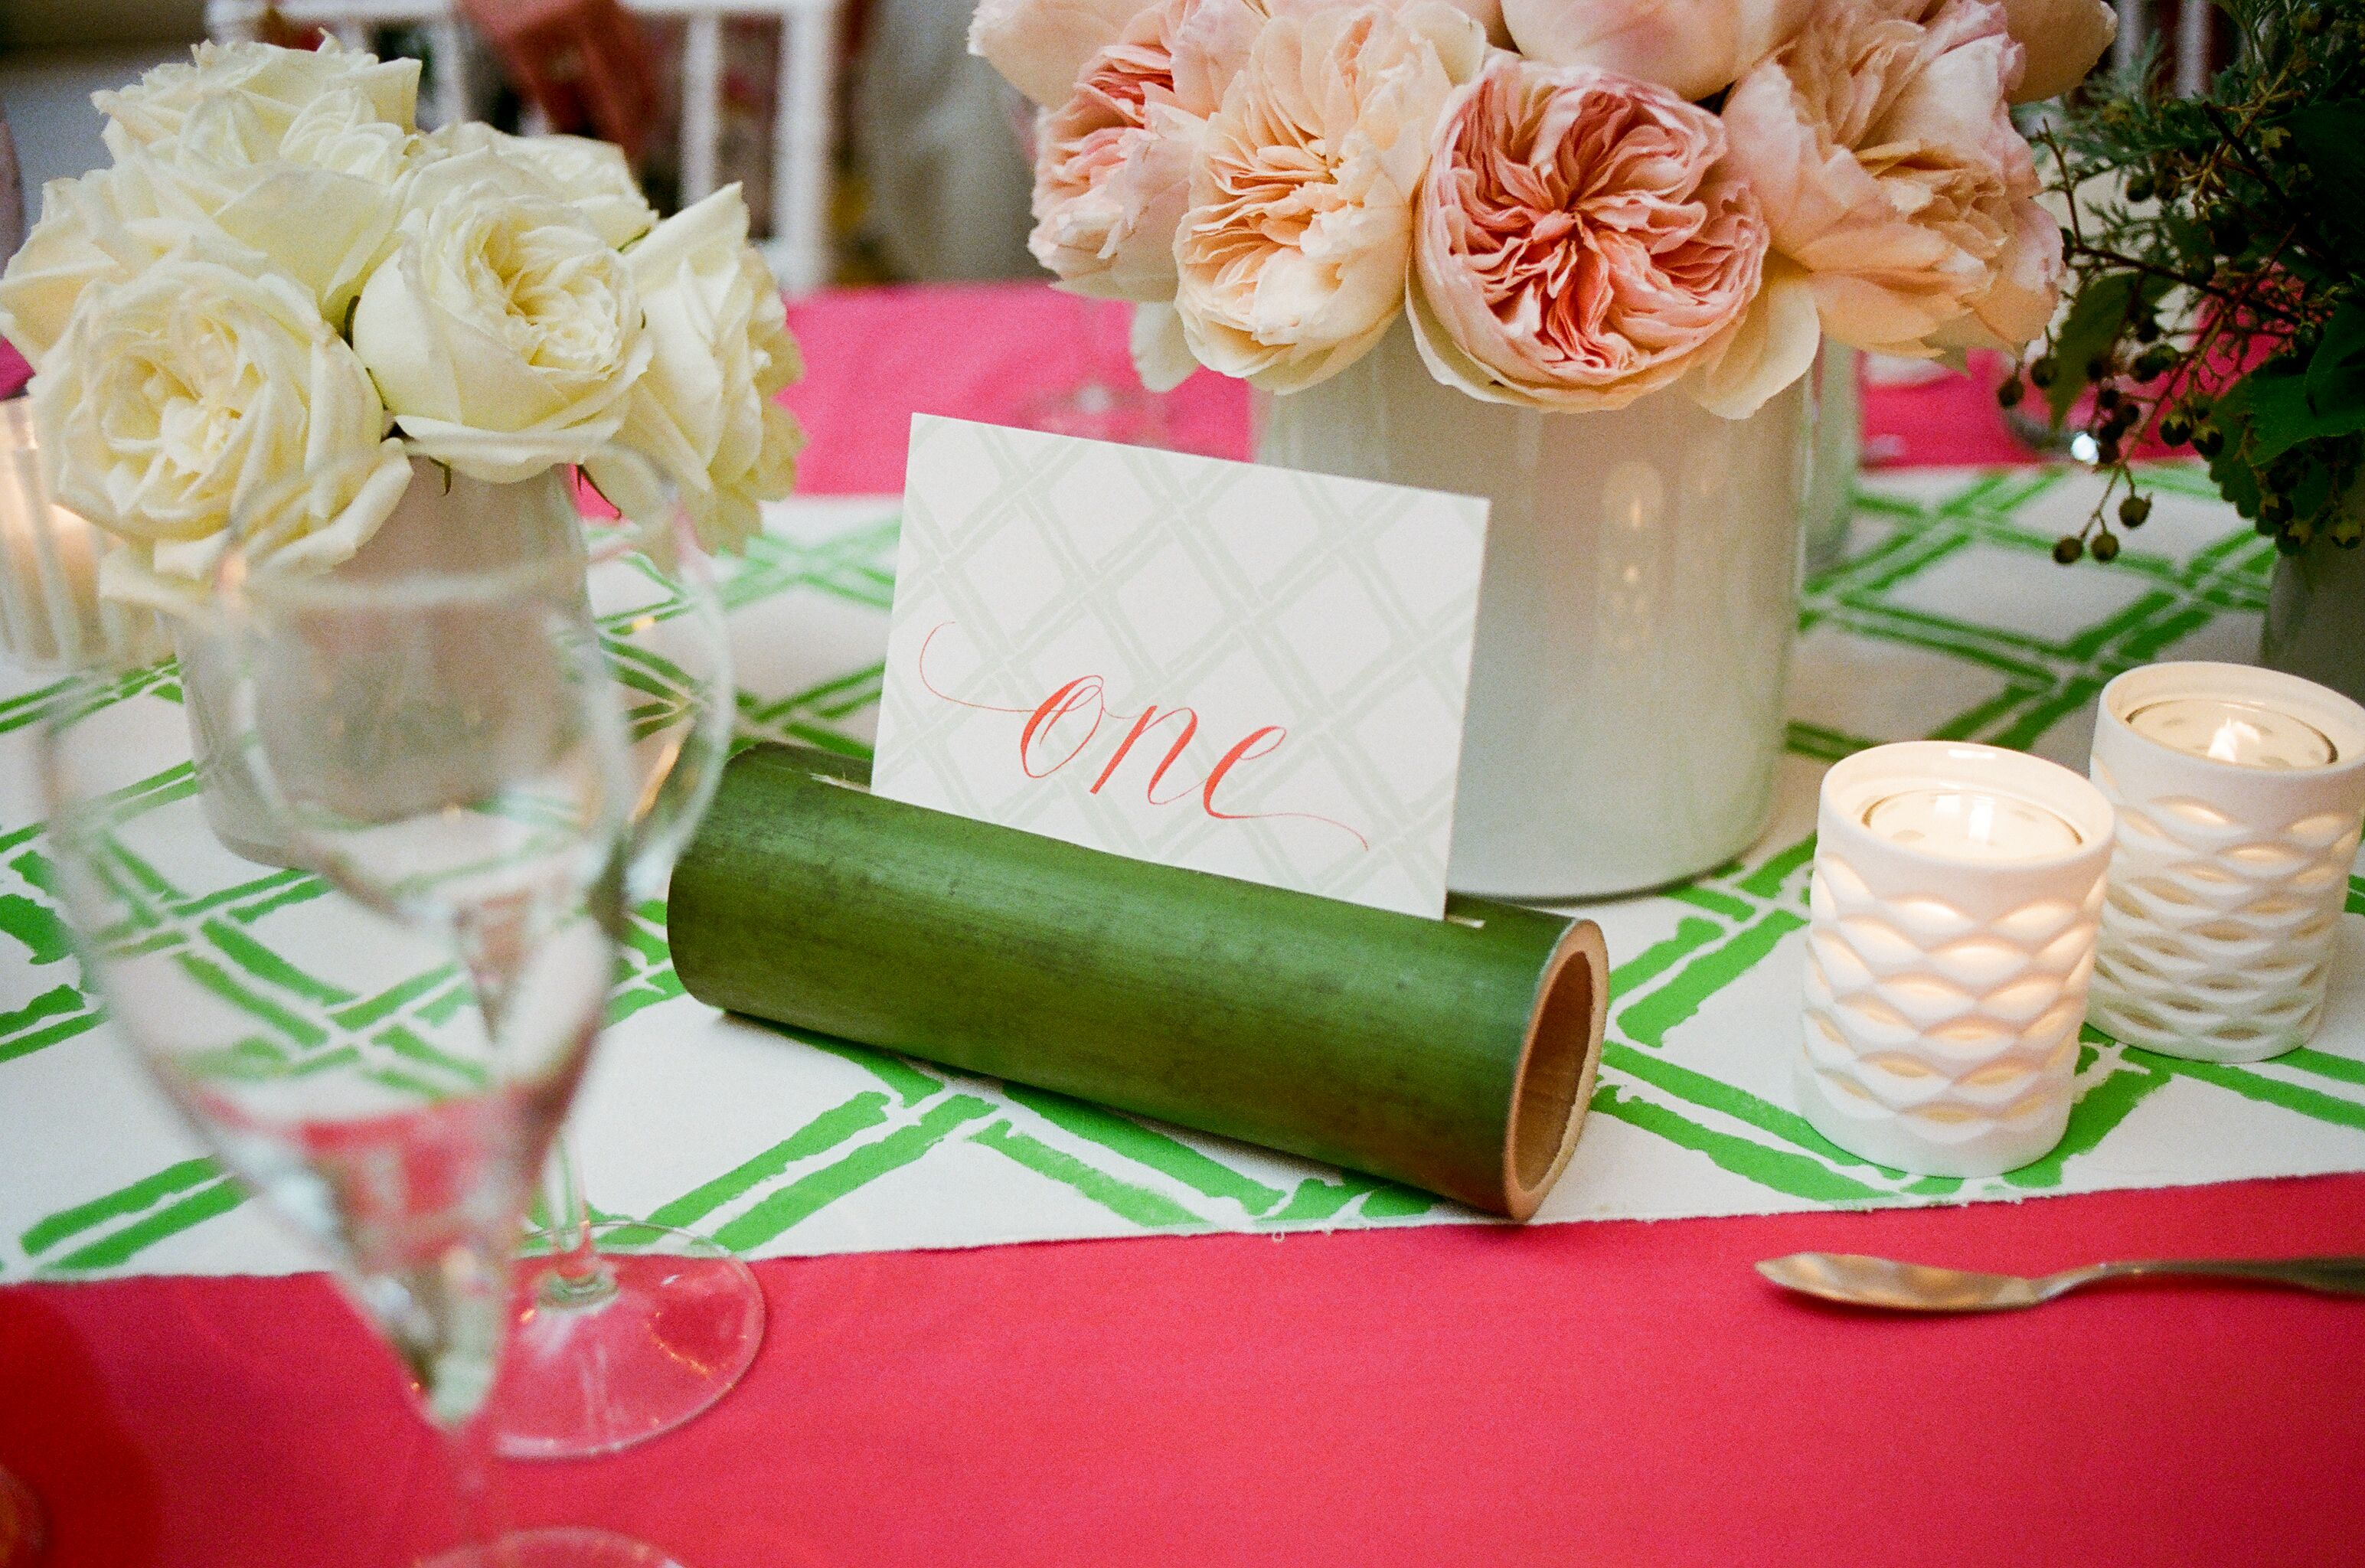 bamboo table number holder|calder clark designs|a bryan photo | Wedding  decorations, Table top, Bamboo table